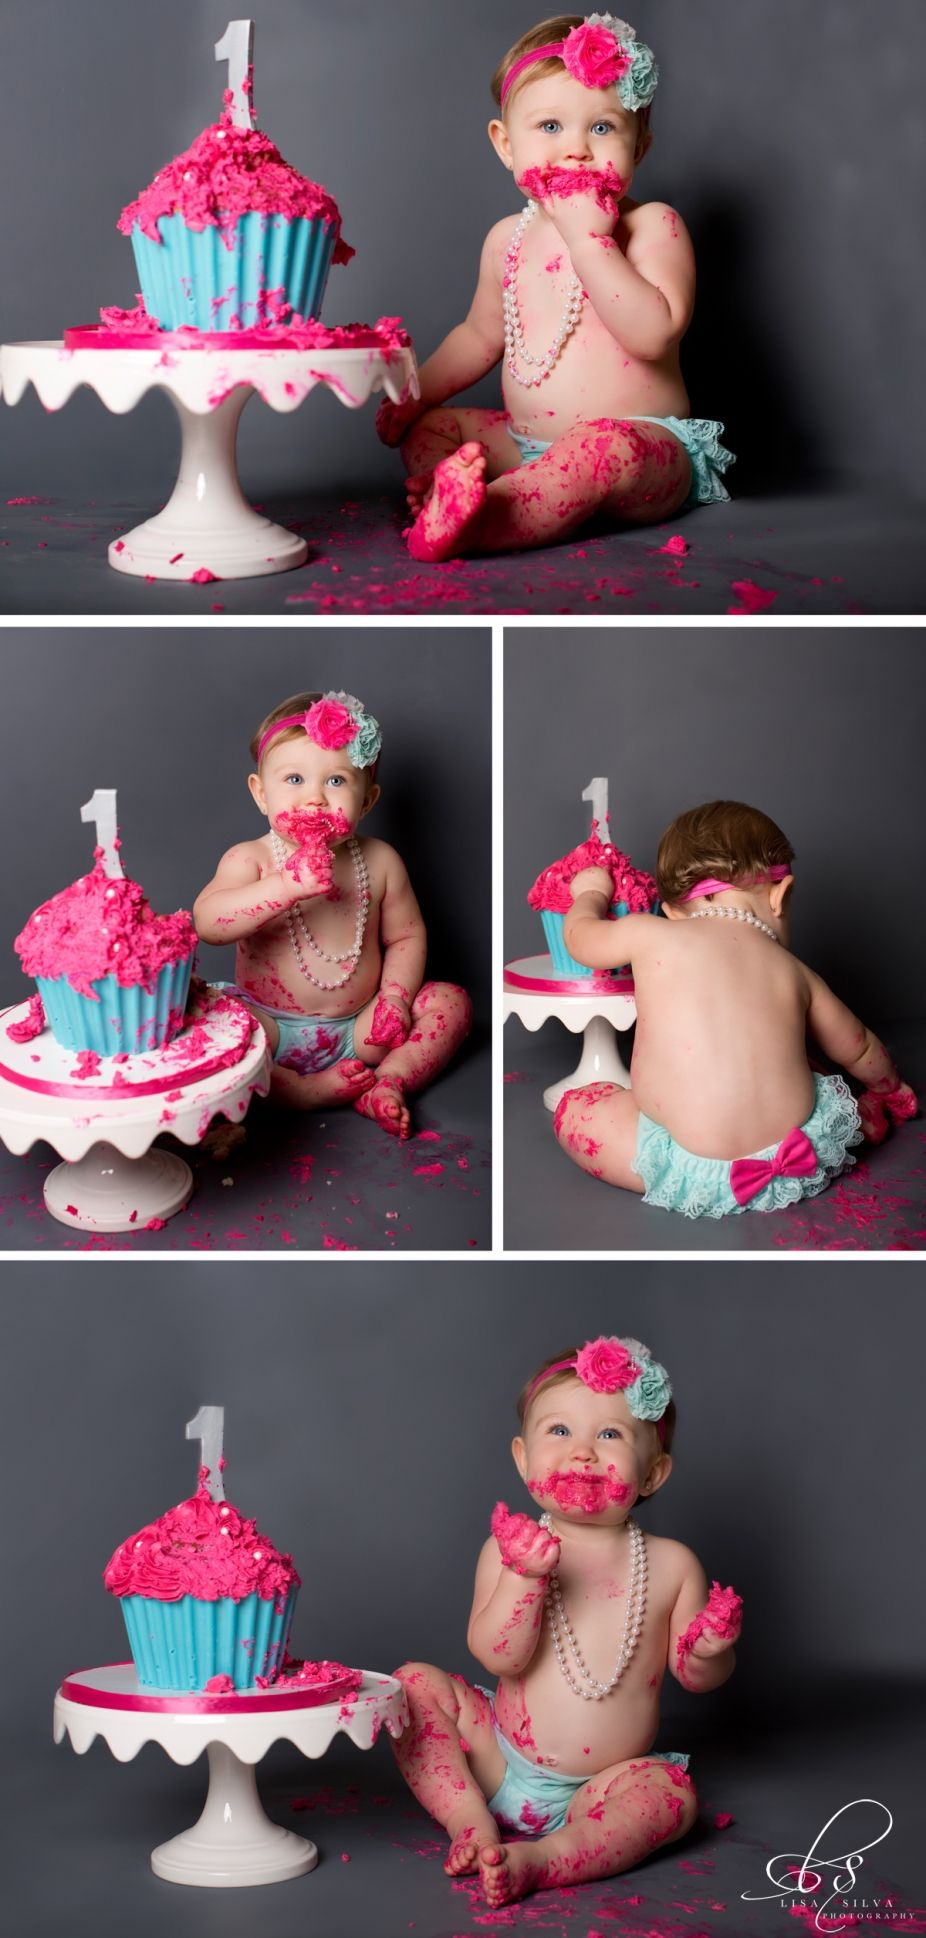 First Birthday Shoot Baby Girl 1 Year Old Cake Smash www